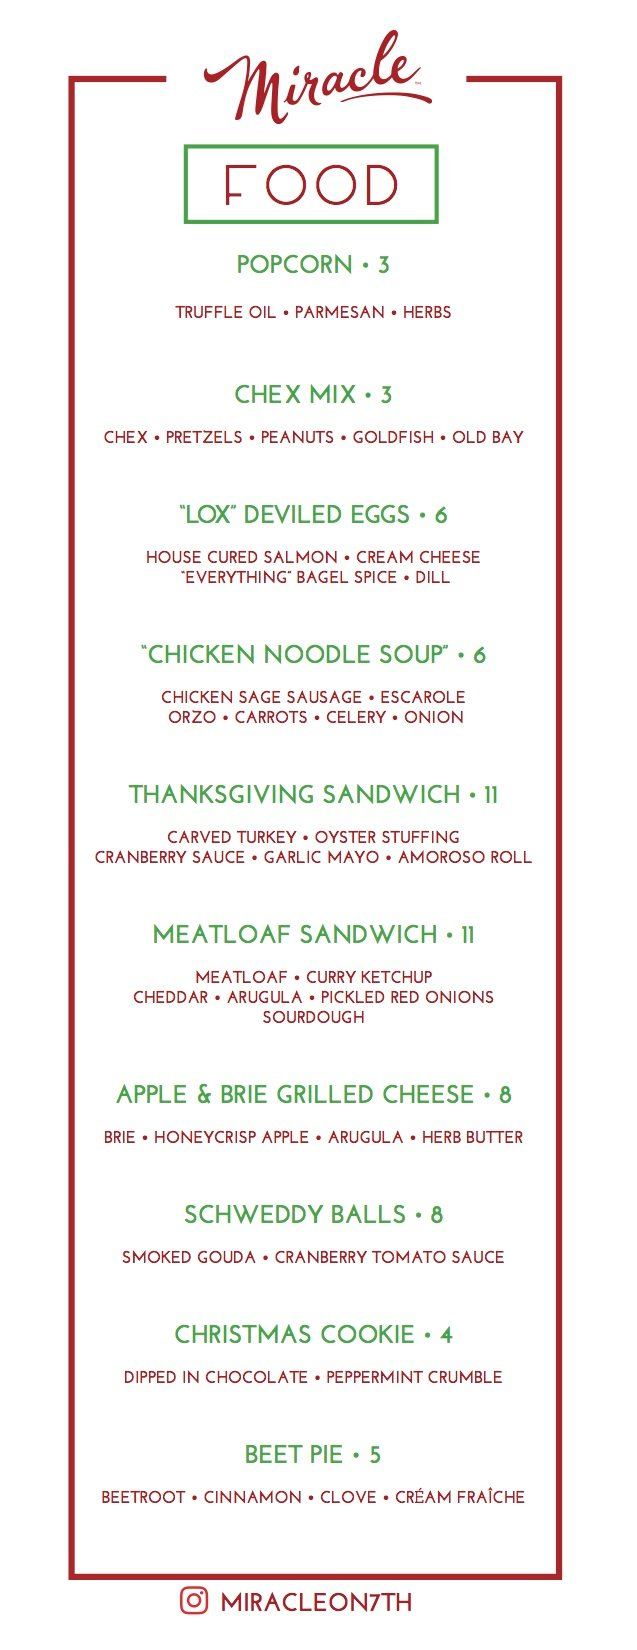 Pad the stomach with grilled cheese and Christmas cookies. Menu courtesy of Miracle on Seventh